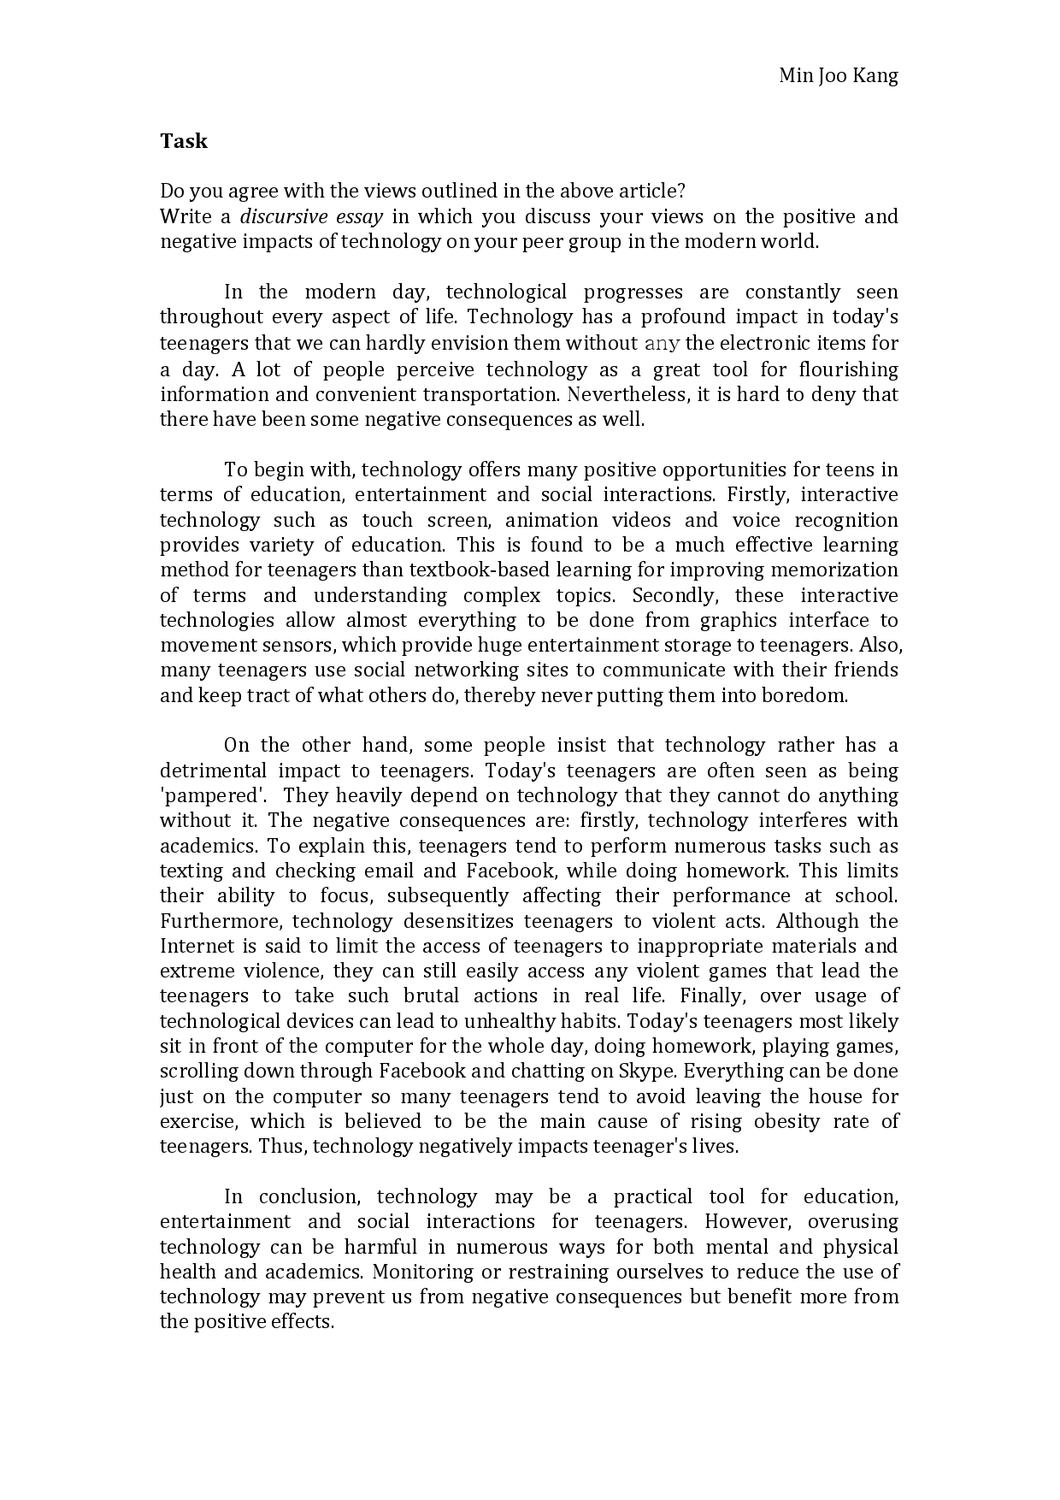 Example Thesis Statements For Essays  Thesis For A Persuasive Essay also Persuasive Essay Sample High School Technology Discursive Essay By Min Joo Kang  Issuu Sample Essay With Thesis Statement